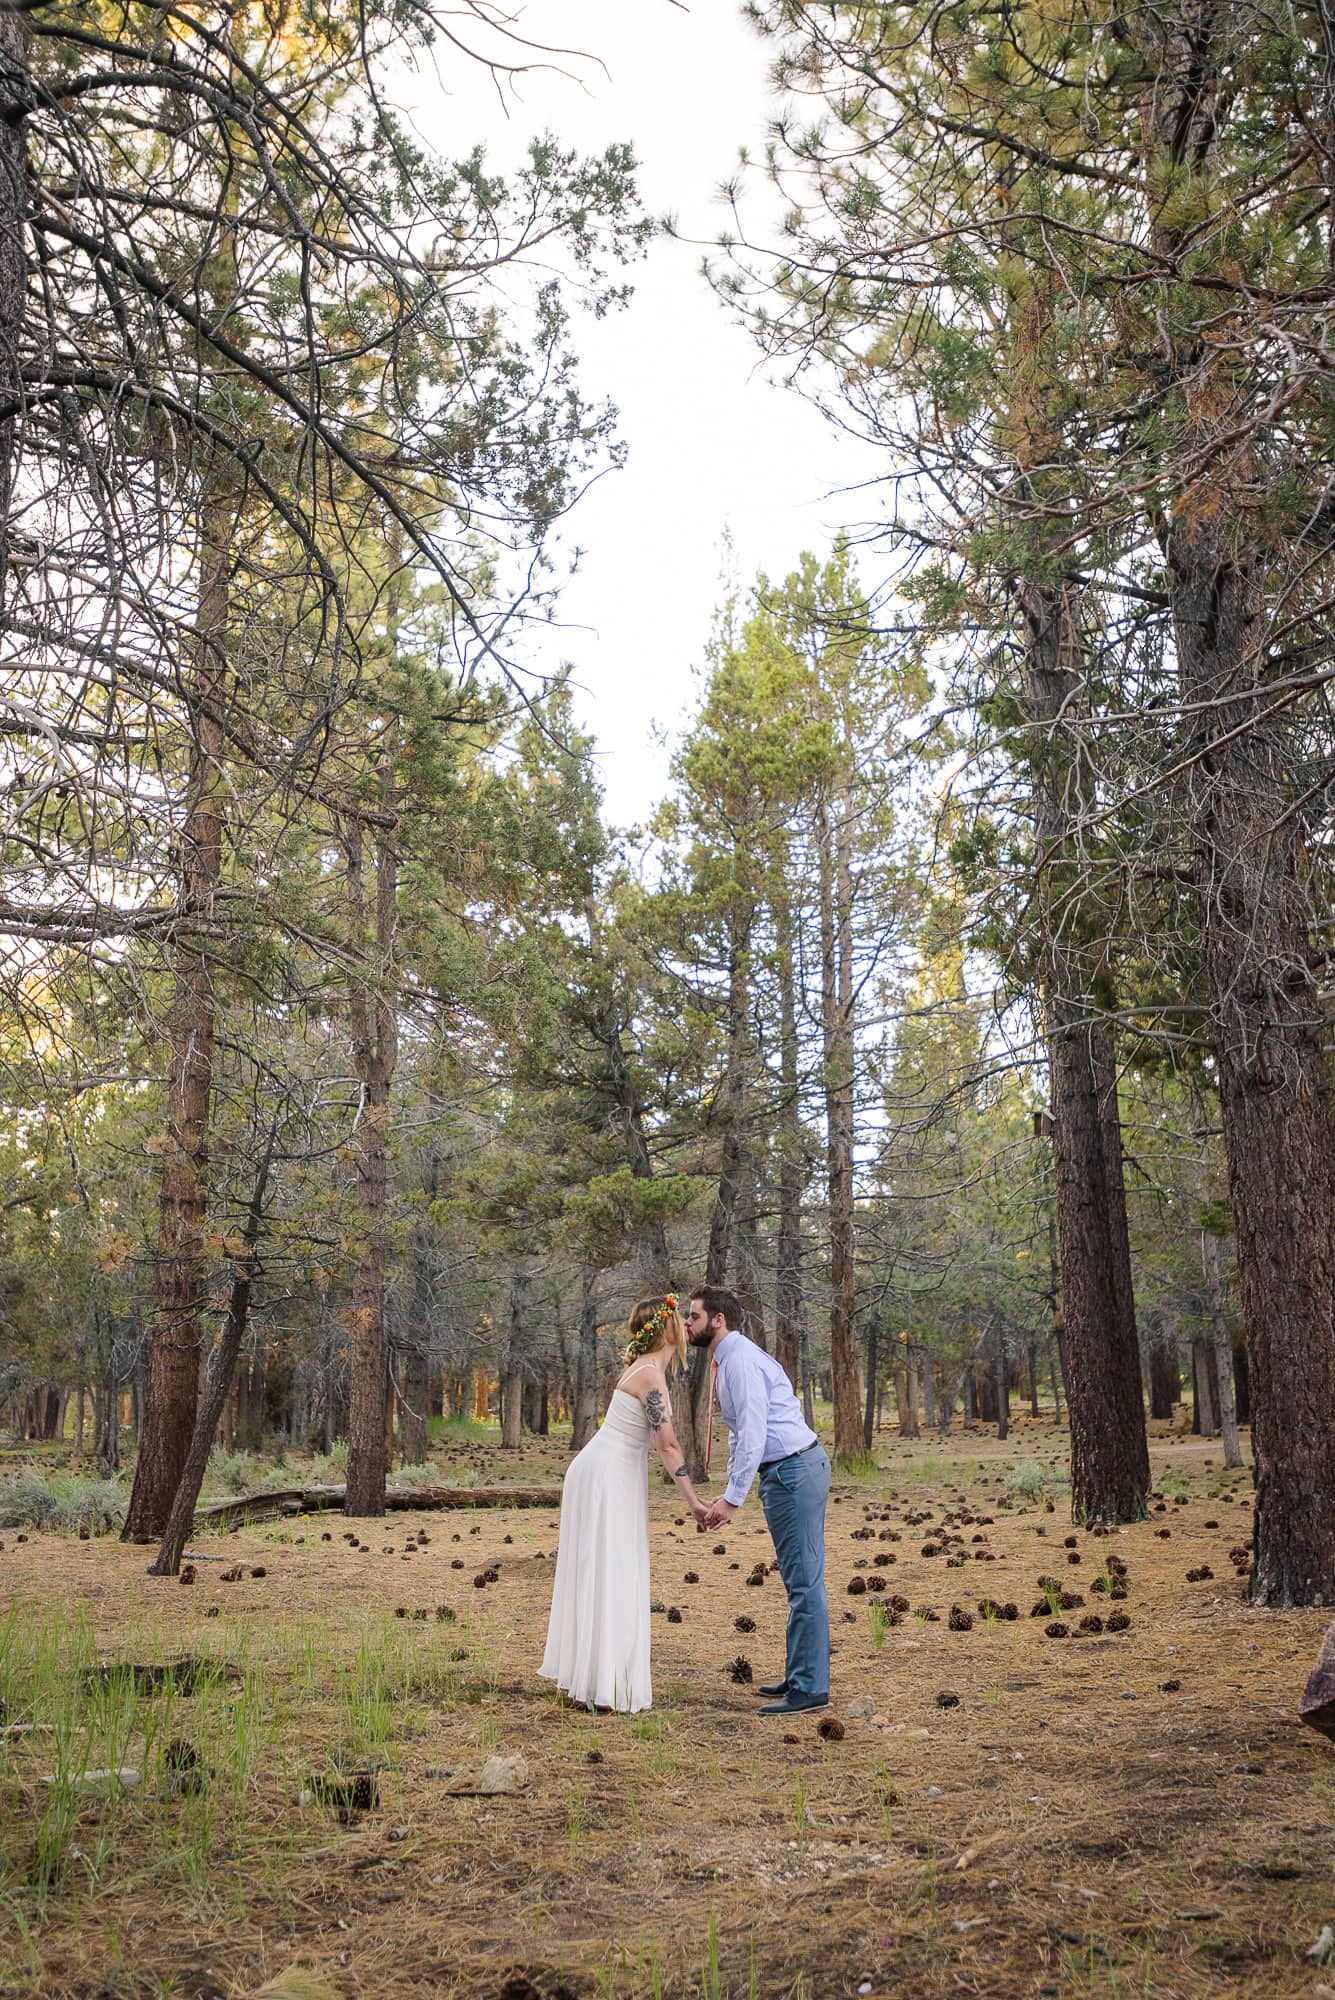 042_Alan_and_Heidi_Kensey_Josh_Big_Bear_Elopement